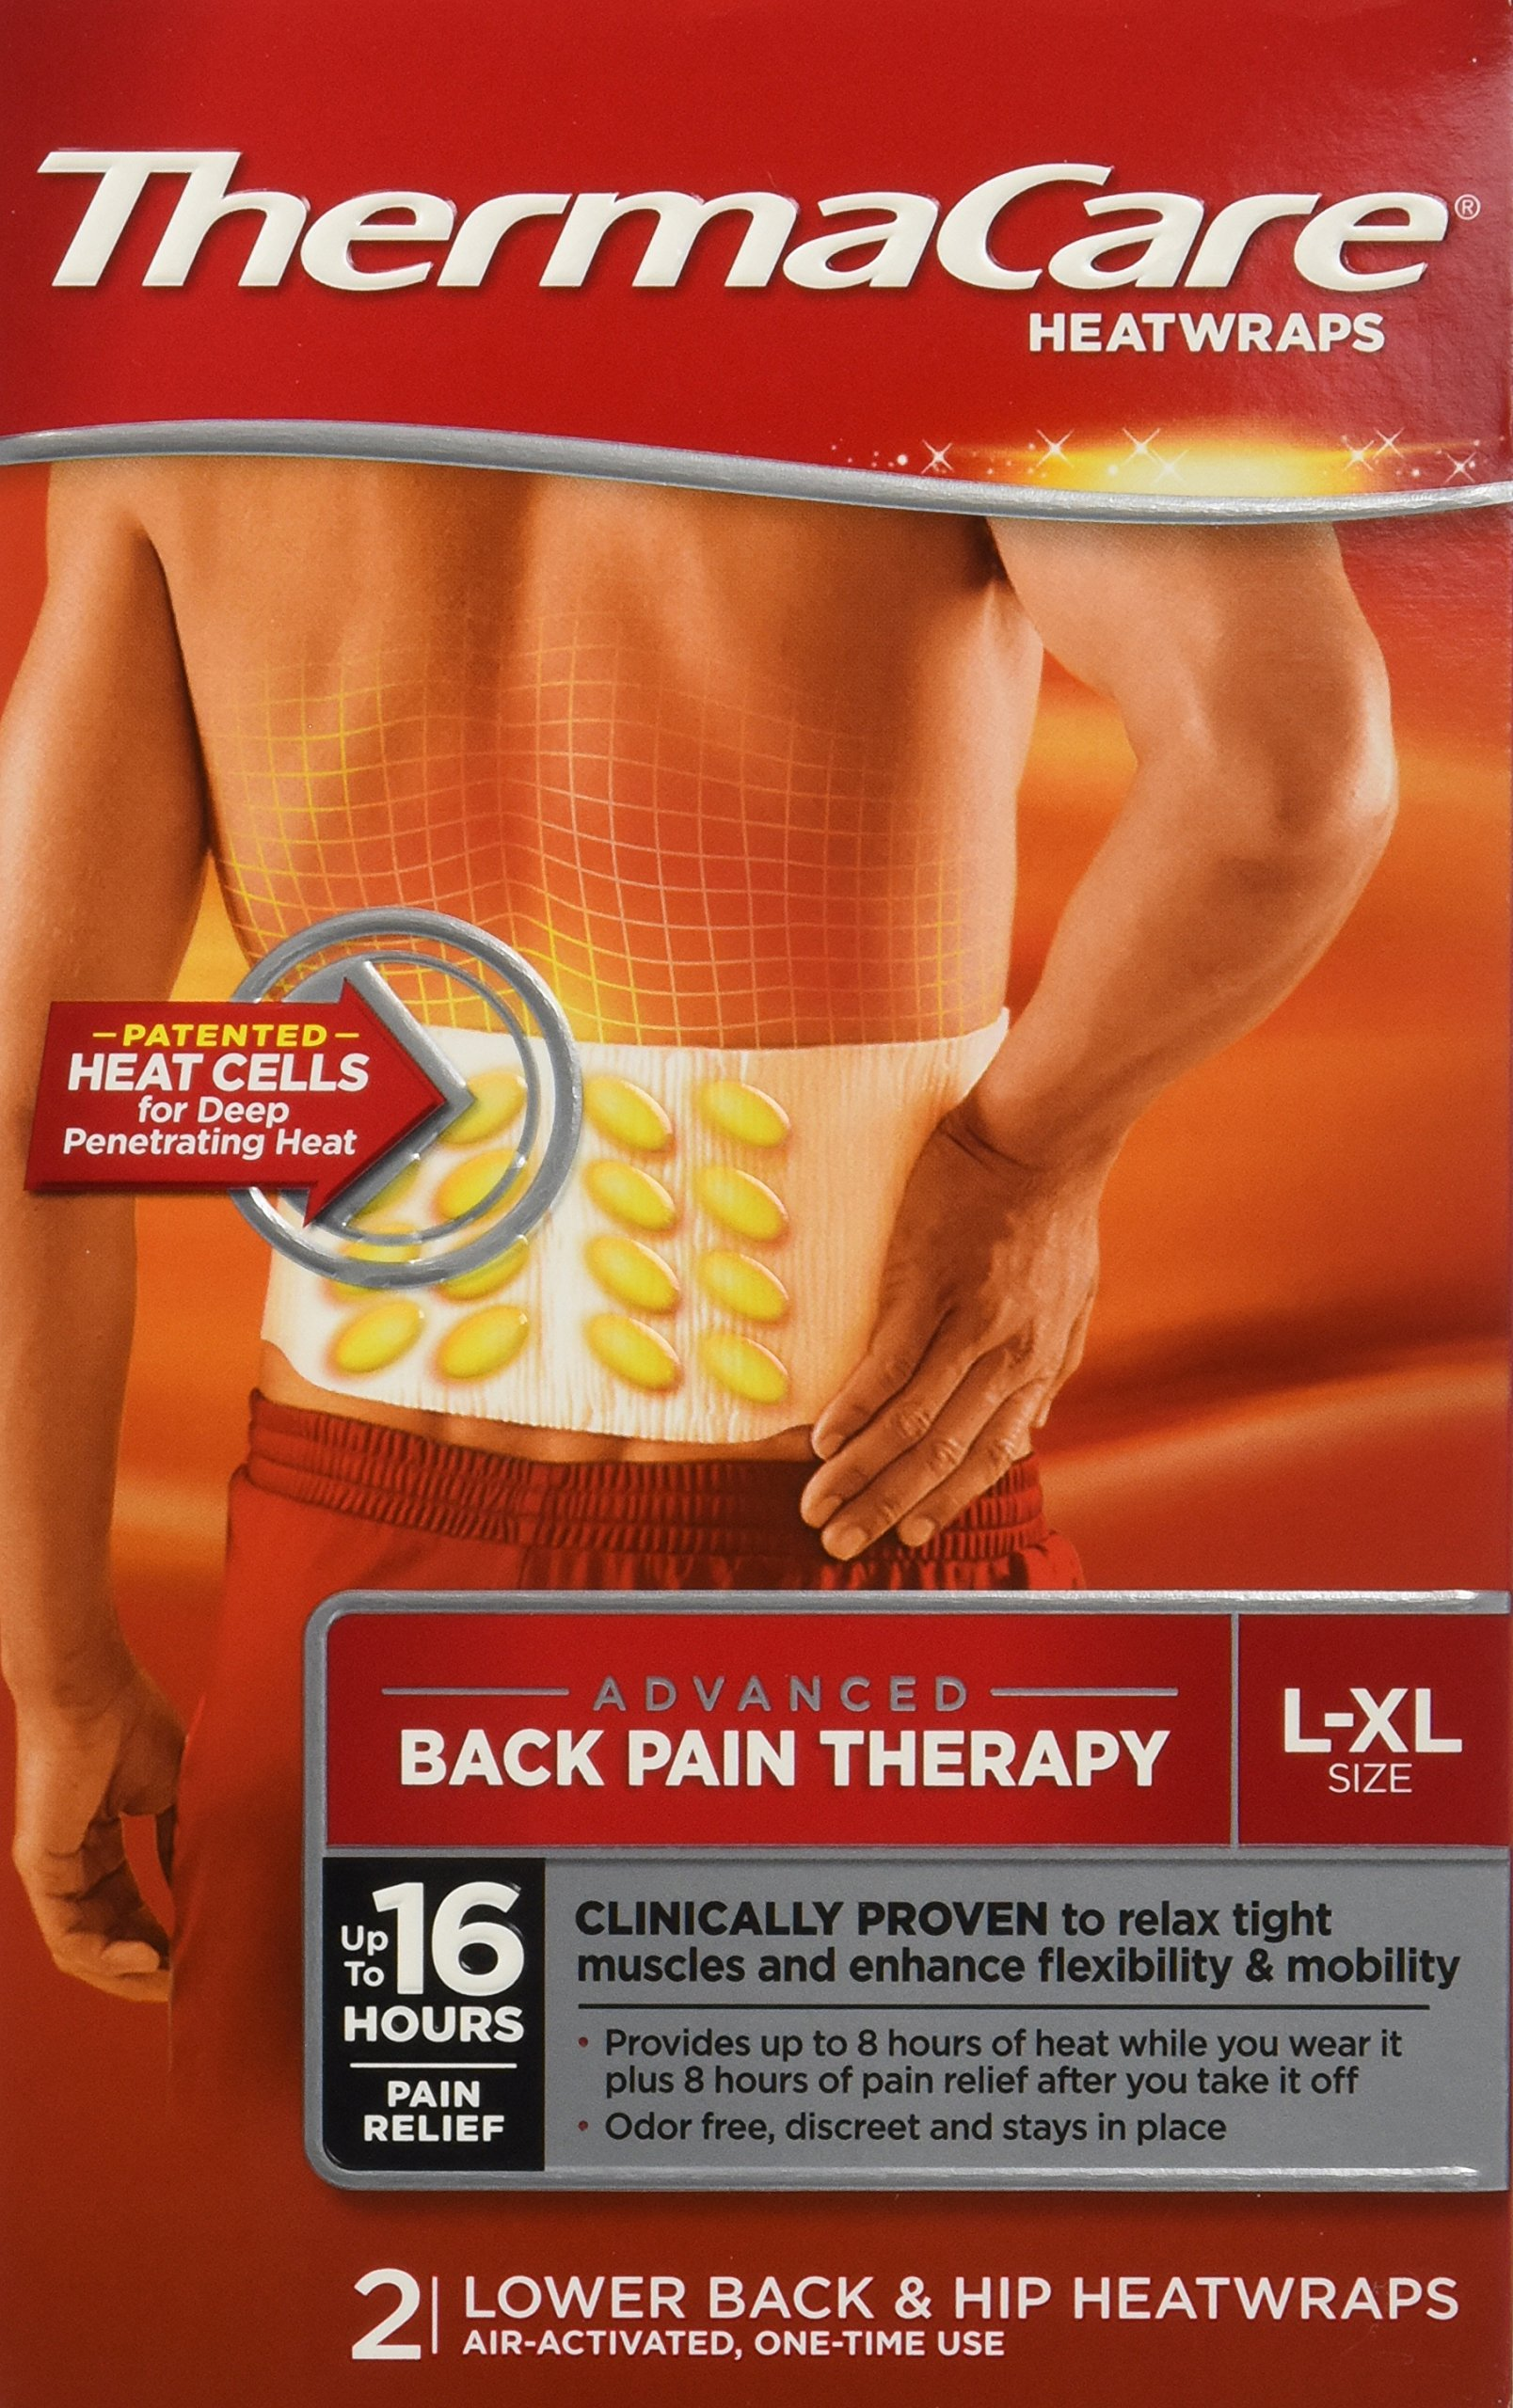 Thermacare Heatwraps Lower Back & Hip, L-XL-6 Count